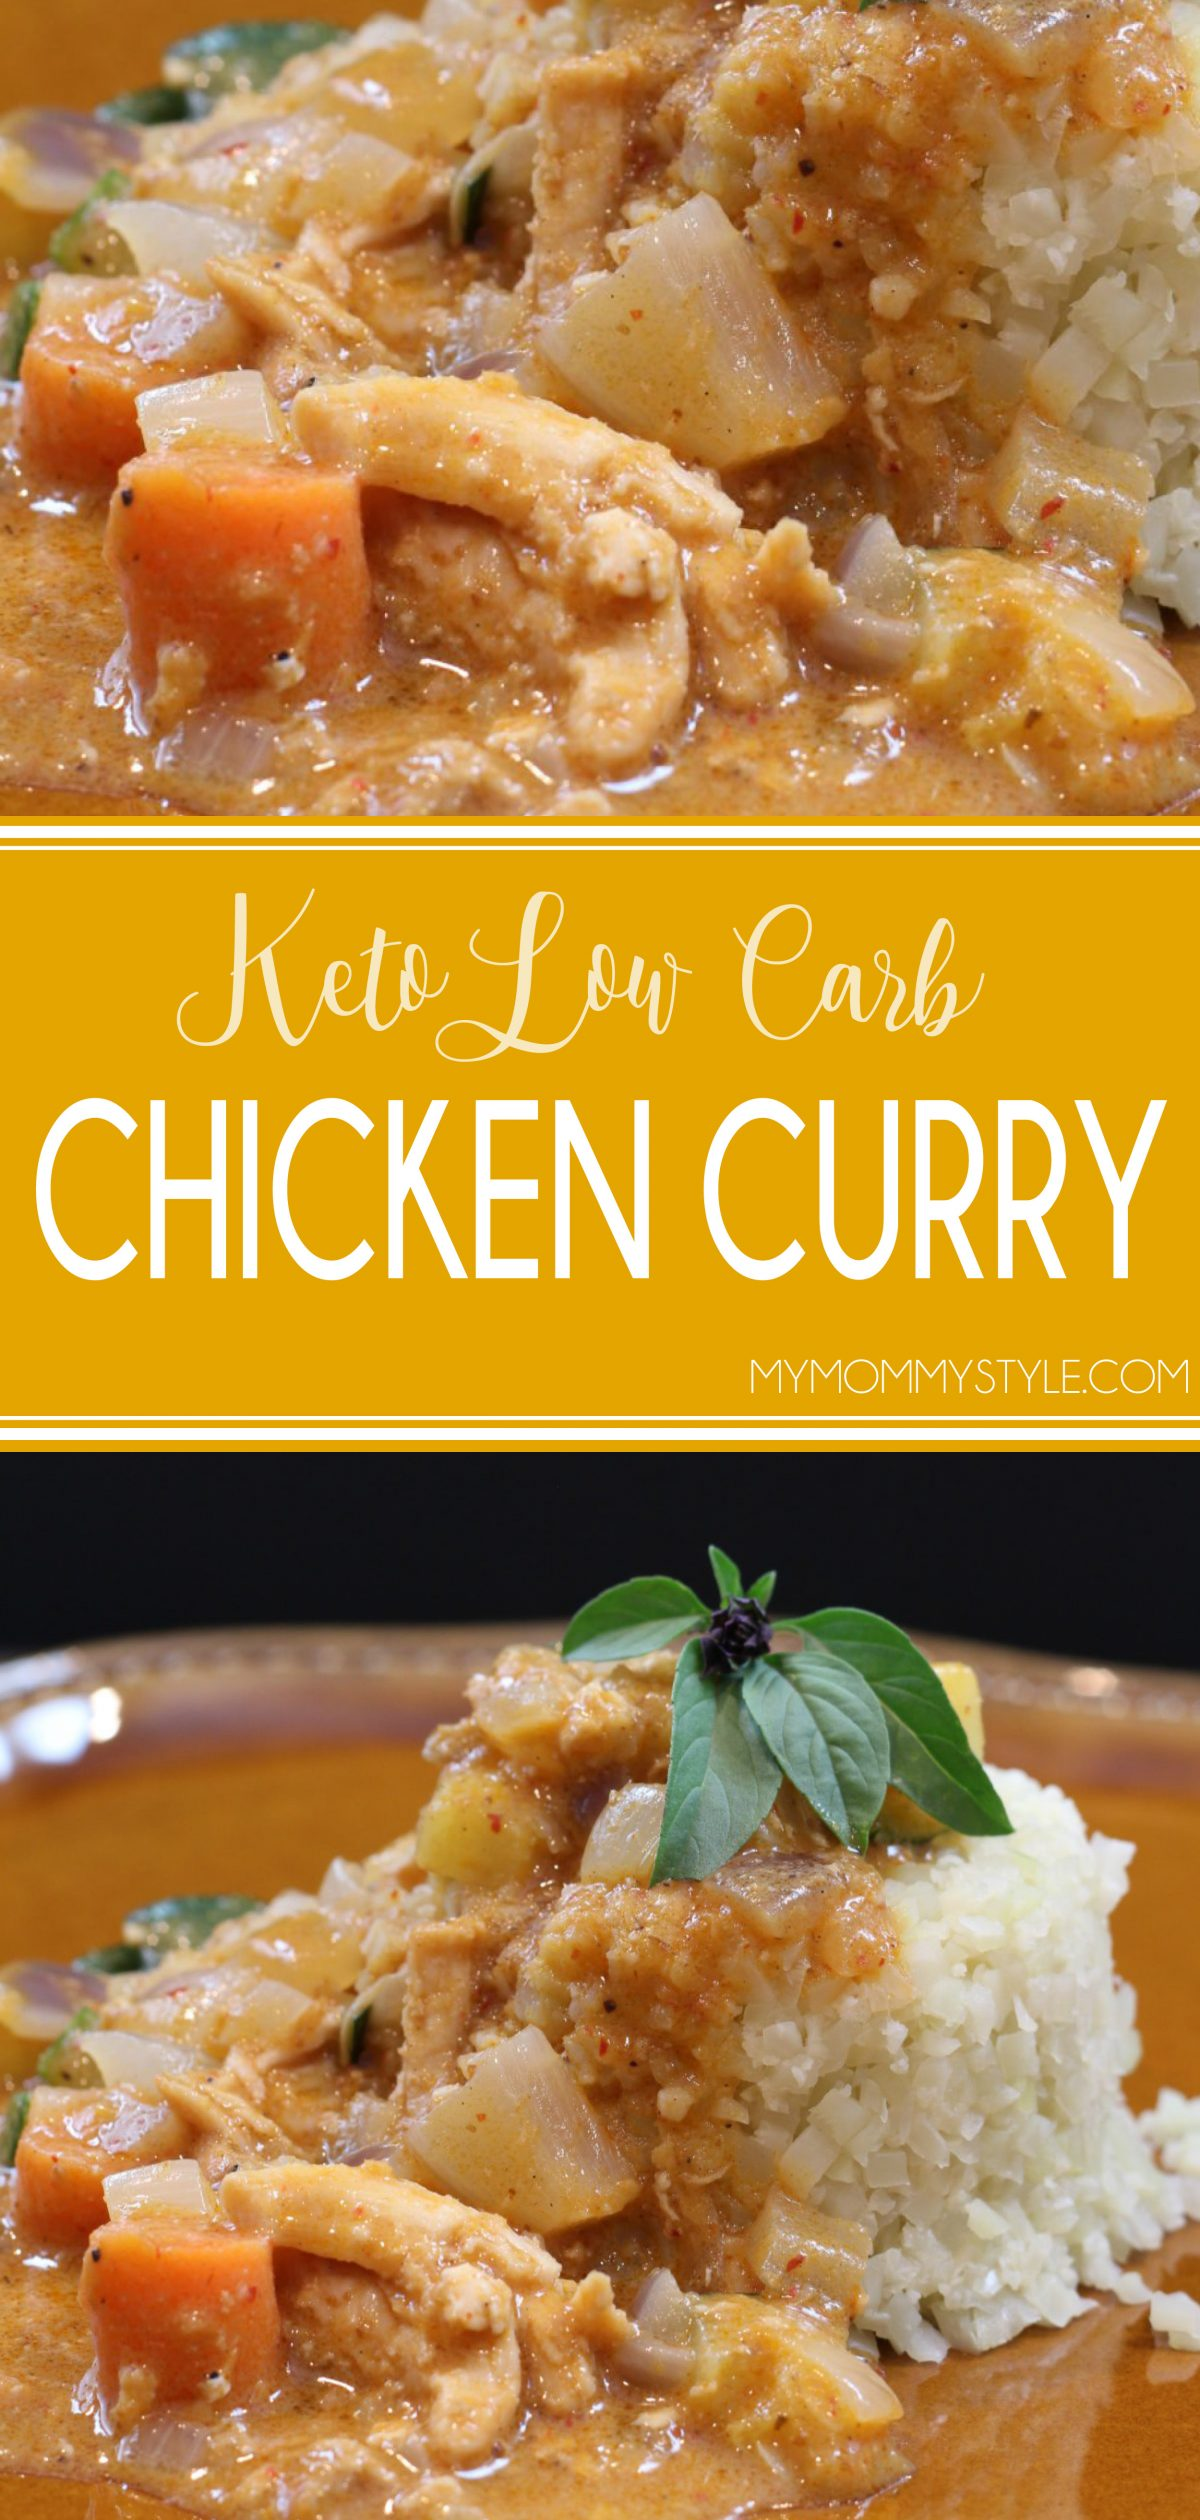 This keto low carb chicken curry really hit the spot. This is a healthy spinoff of an amazing massaman chicken curry recipe we shared a few weeks ago. via @mymommystyle